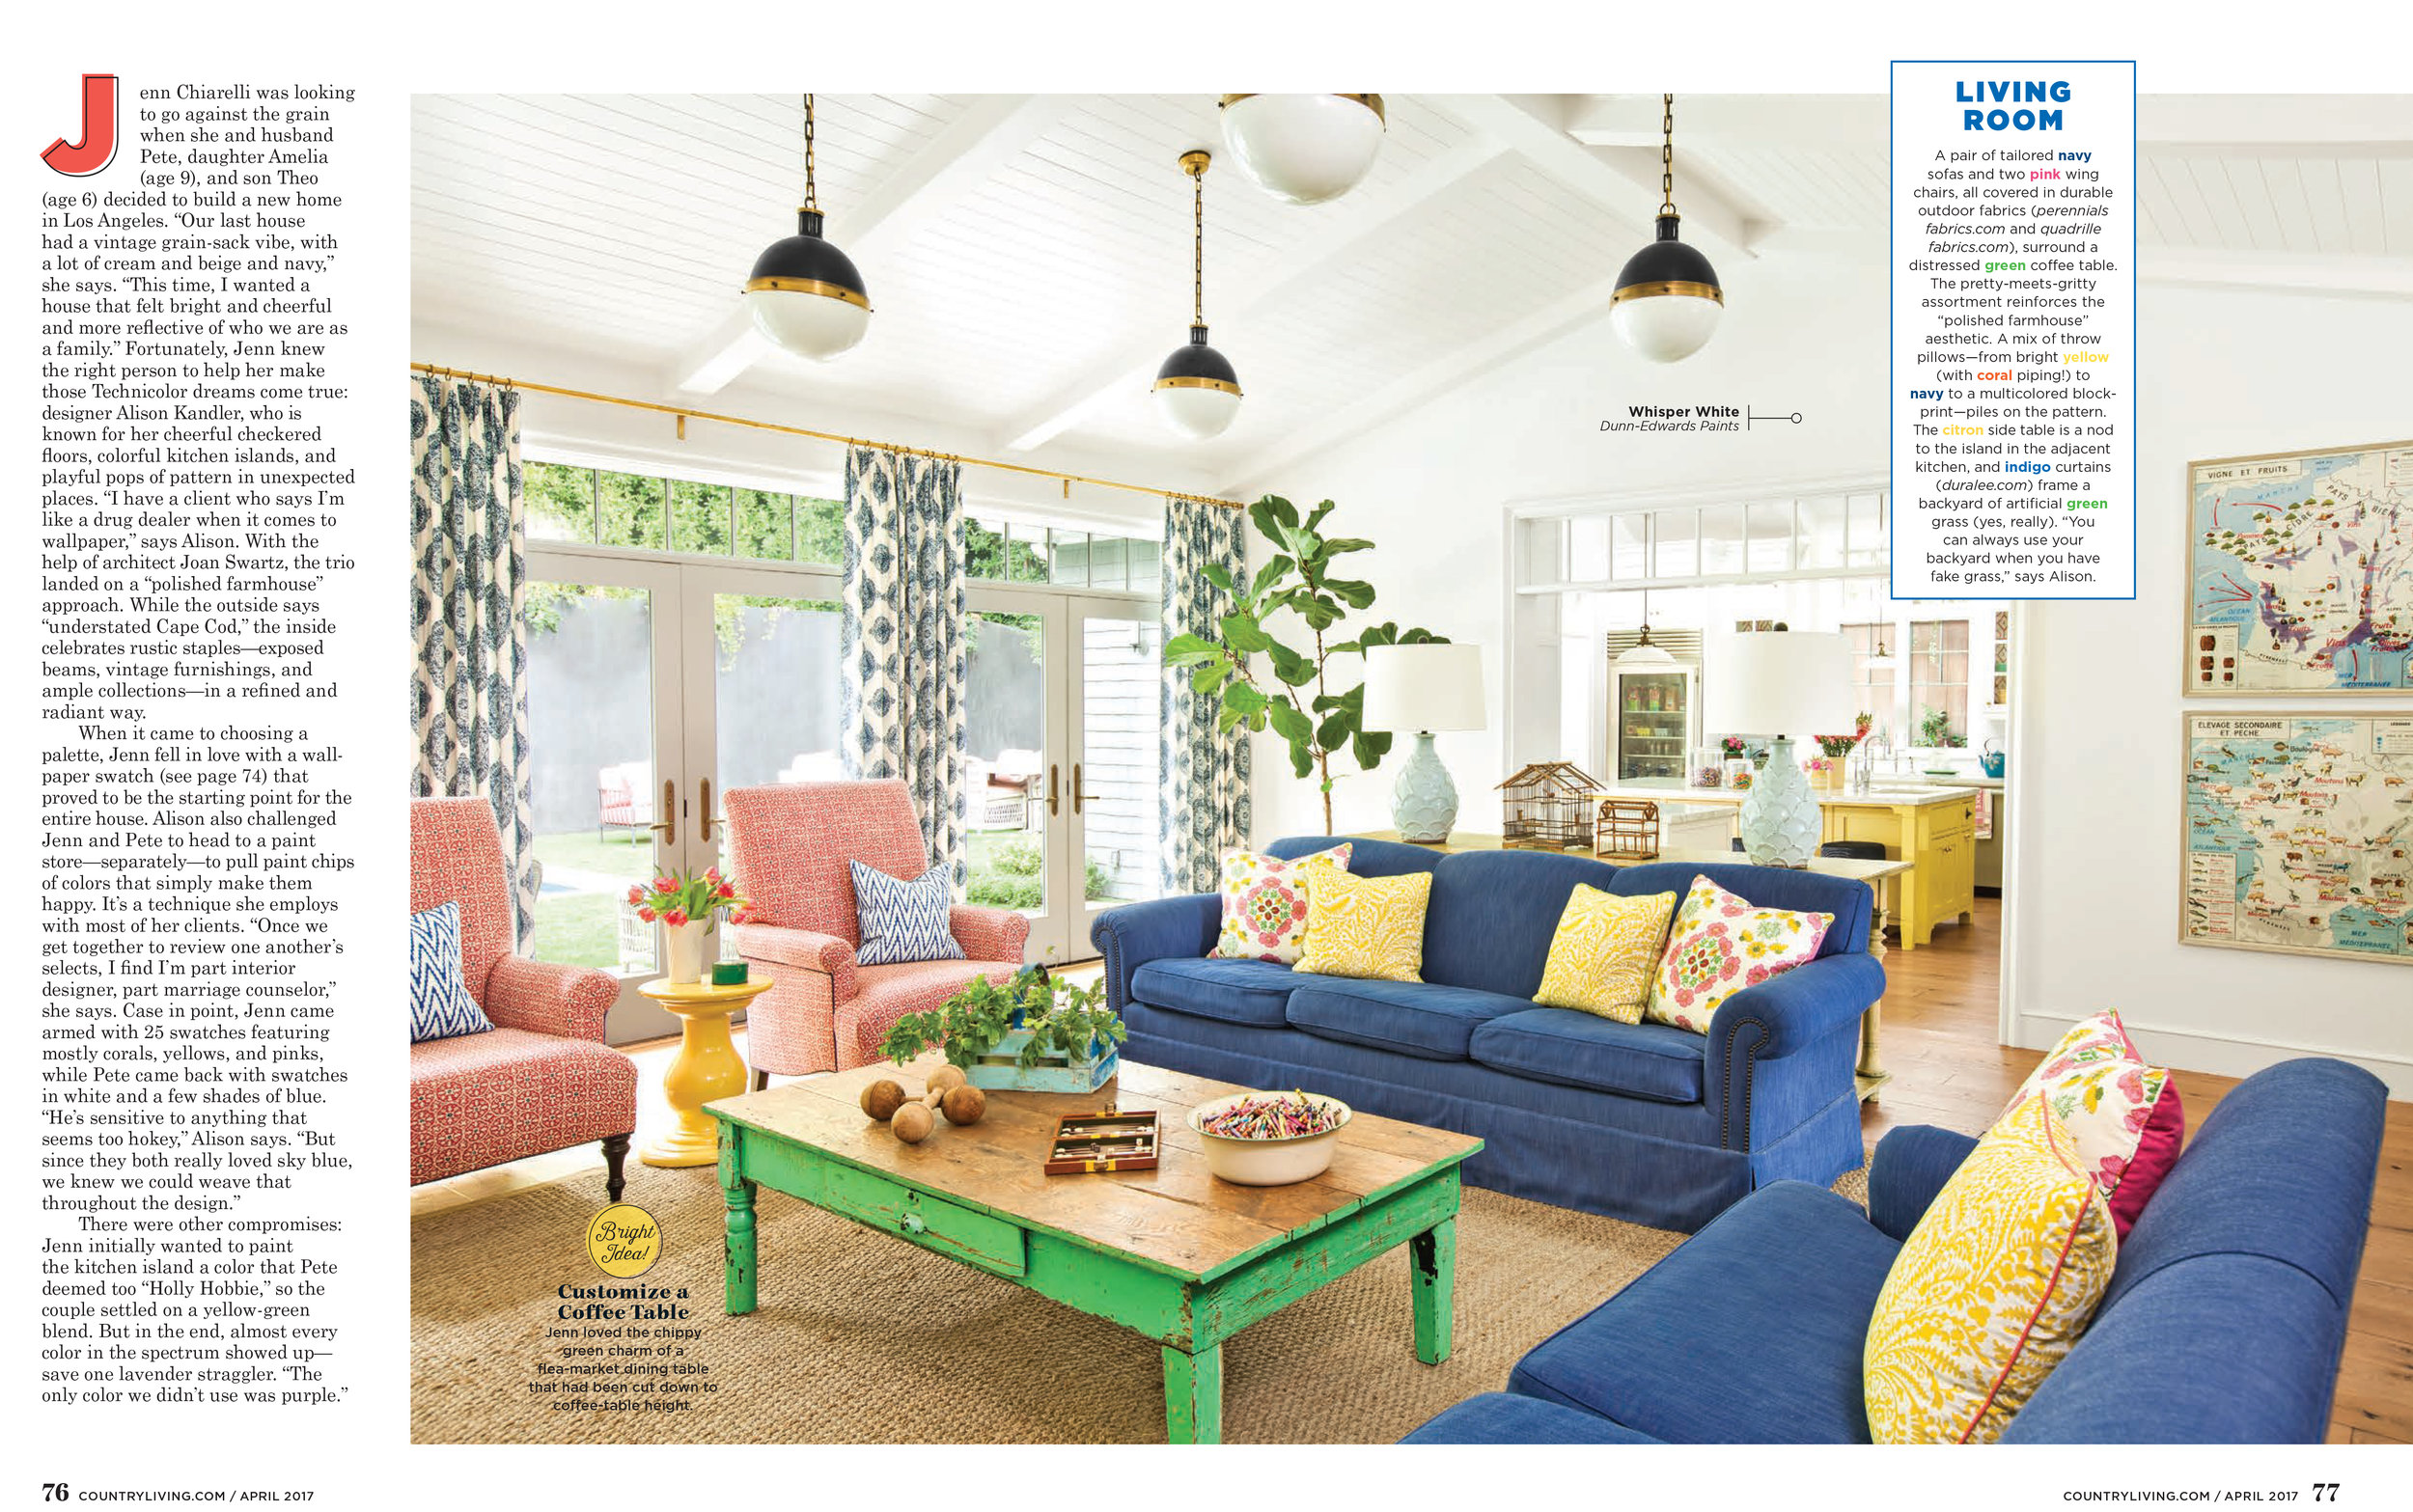 Country_Living_April_2017_Article_pp76-77.jpg